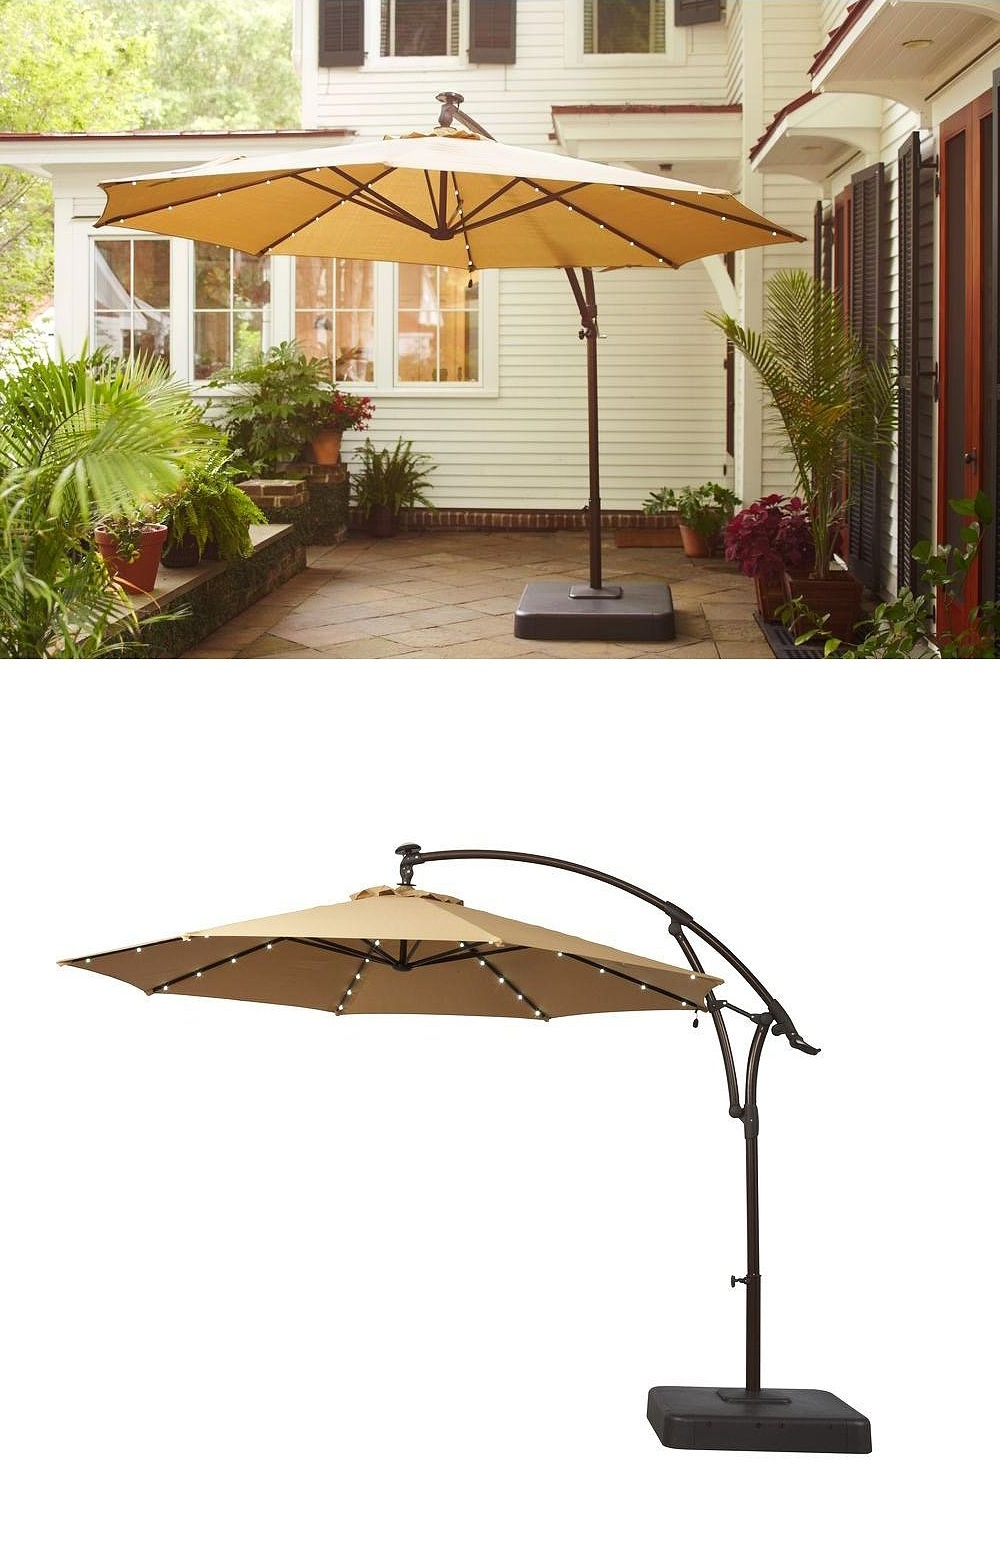 There's Something Special About This Patio Umbrella: It Has Small With Well Liked Patio Umbrellas With Solar Led Lights (View 14 of 20)